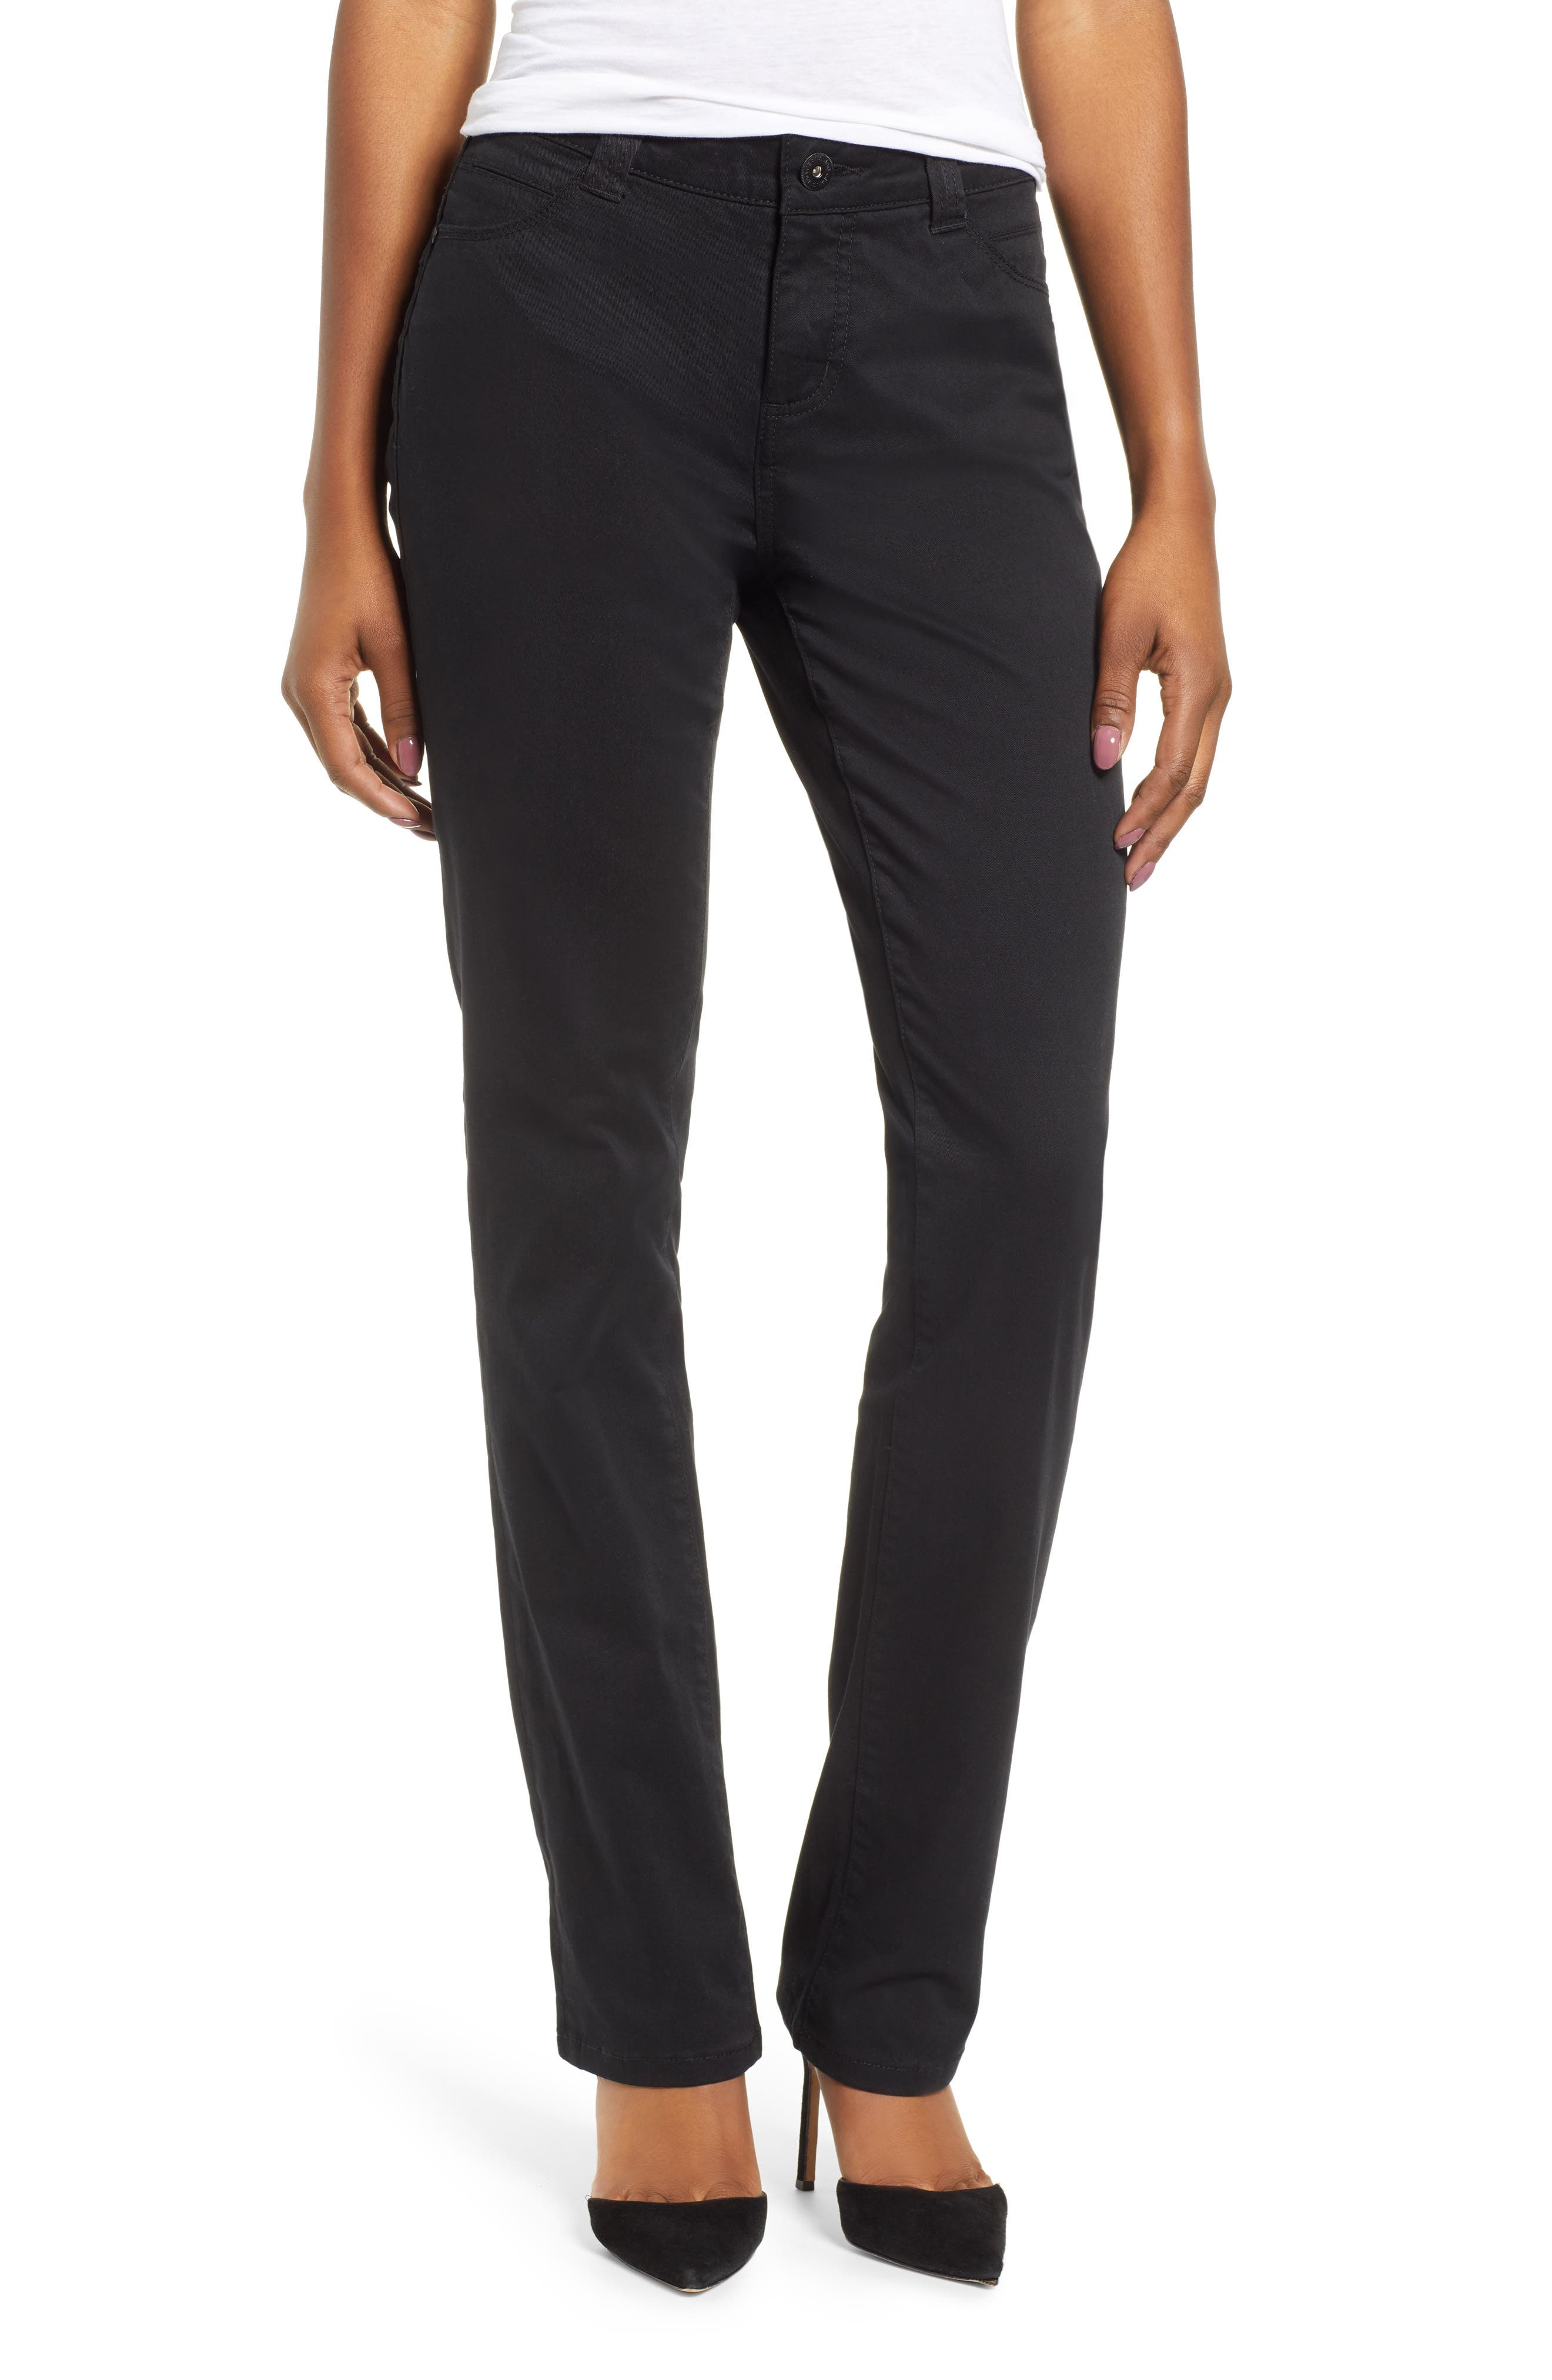 JAG JEANS Ruby Straight Pants in Black